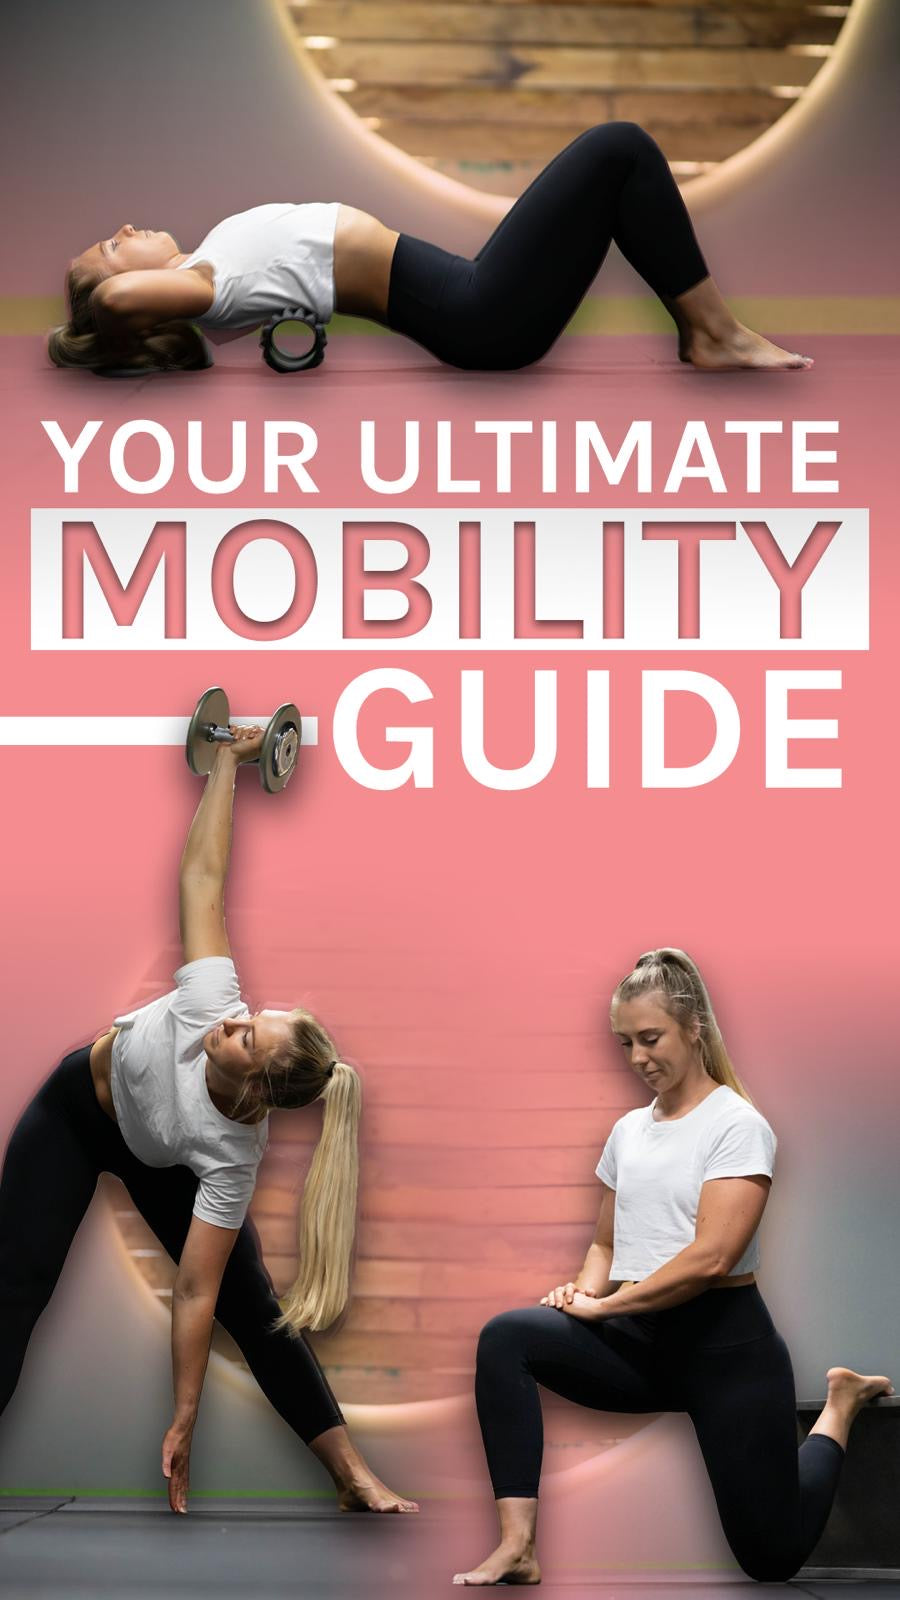 Your ULTIMATE Mobility Guide